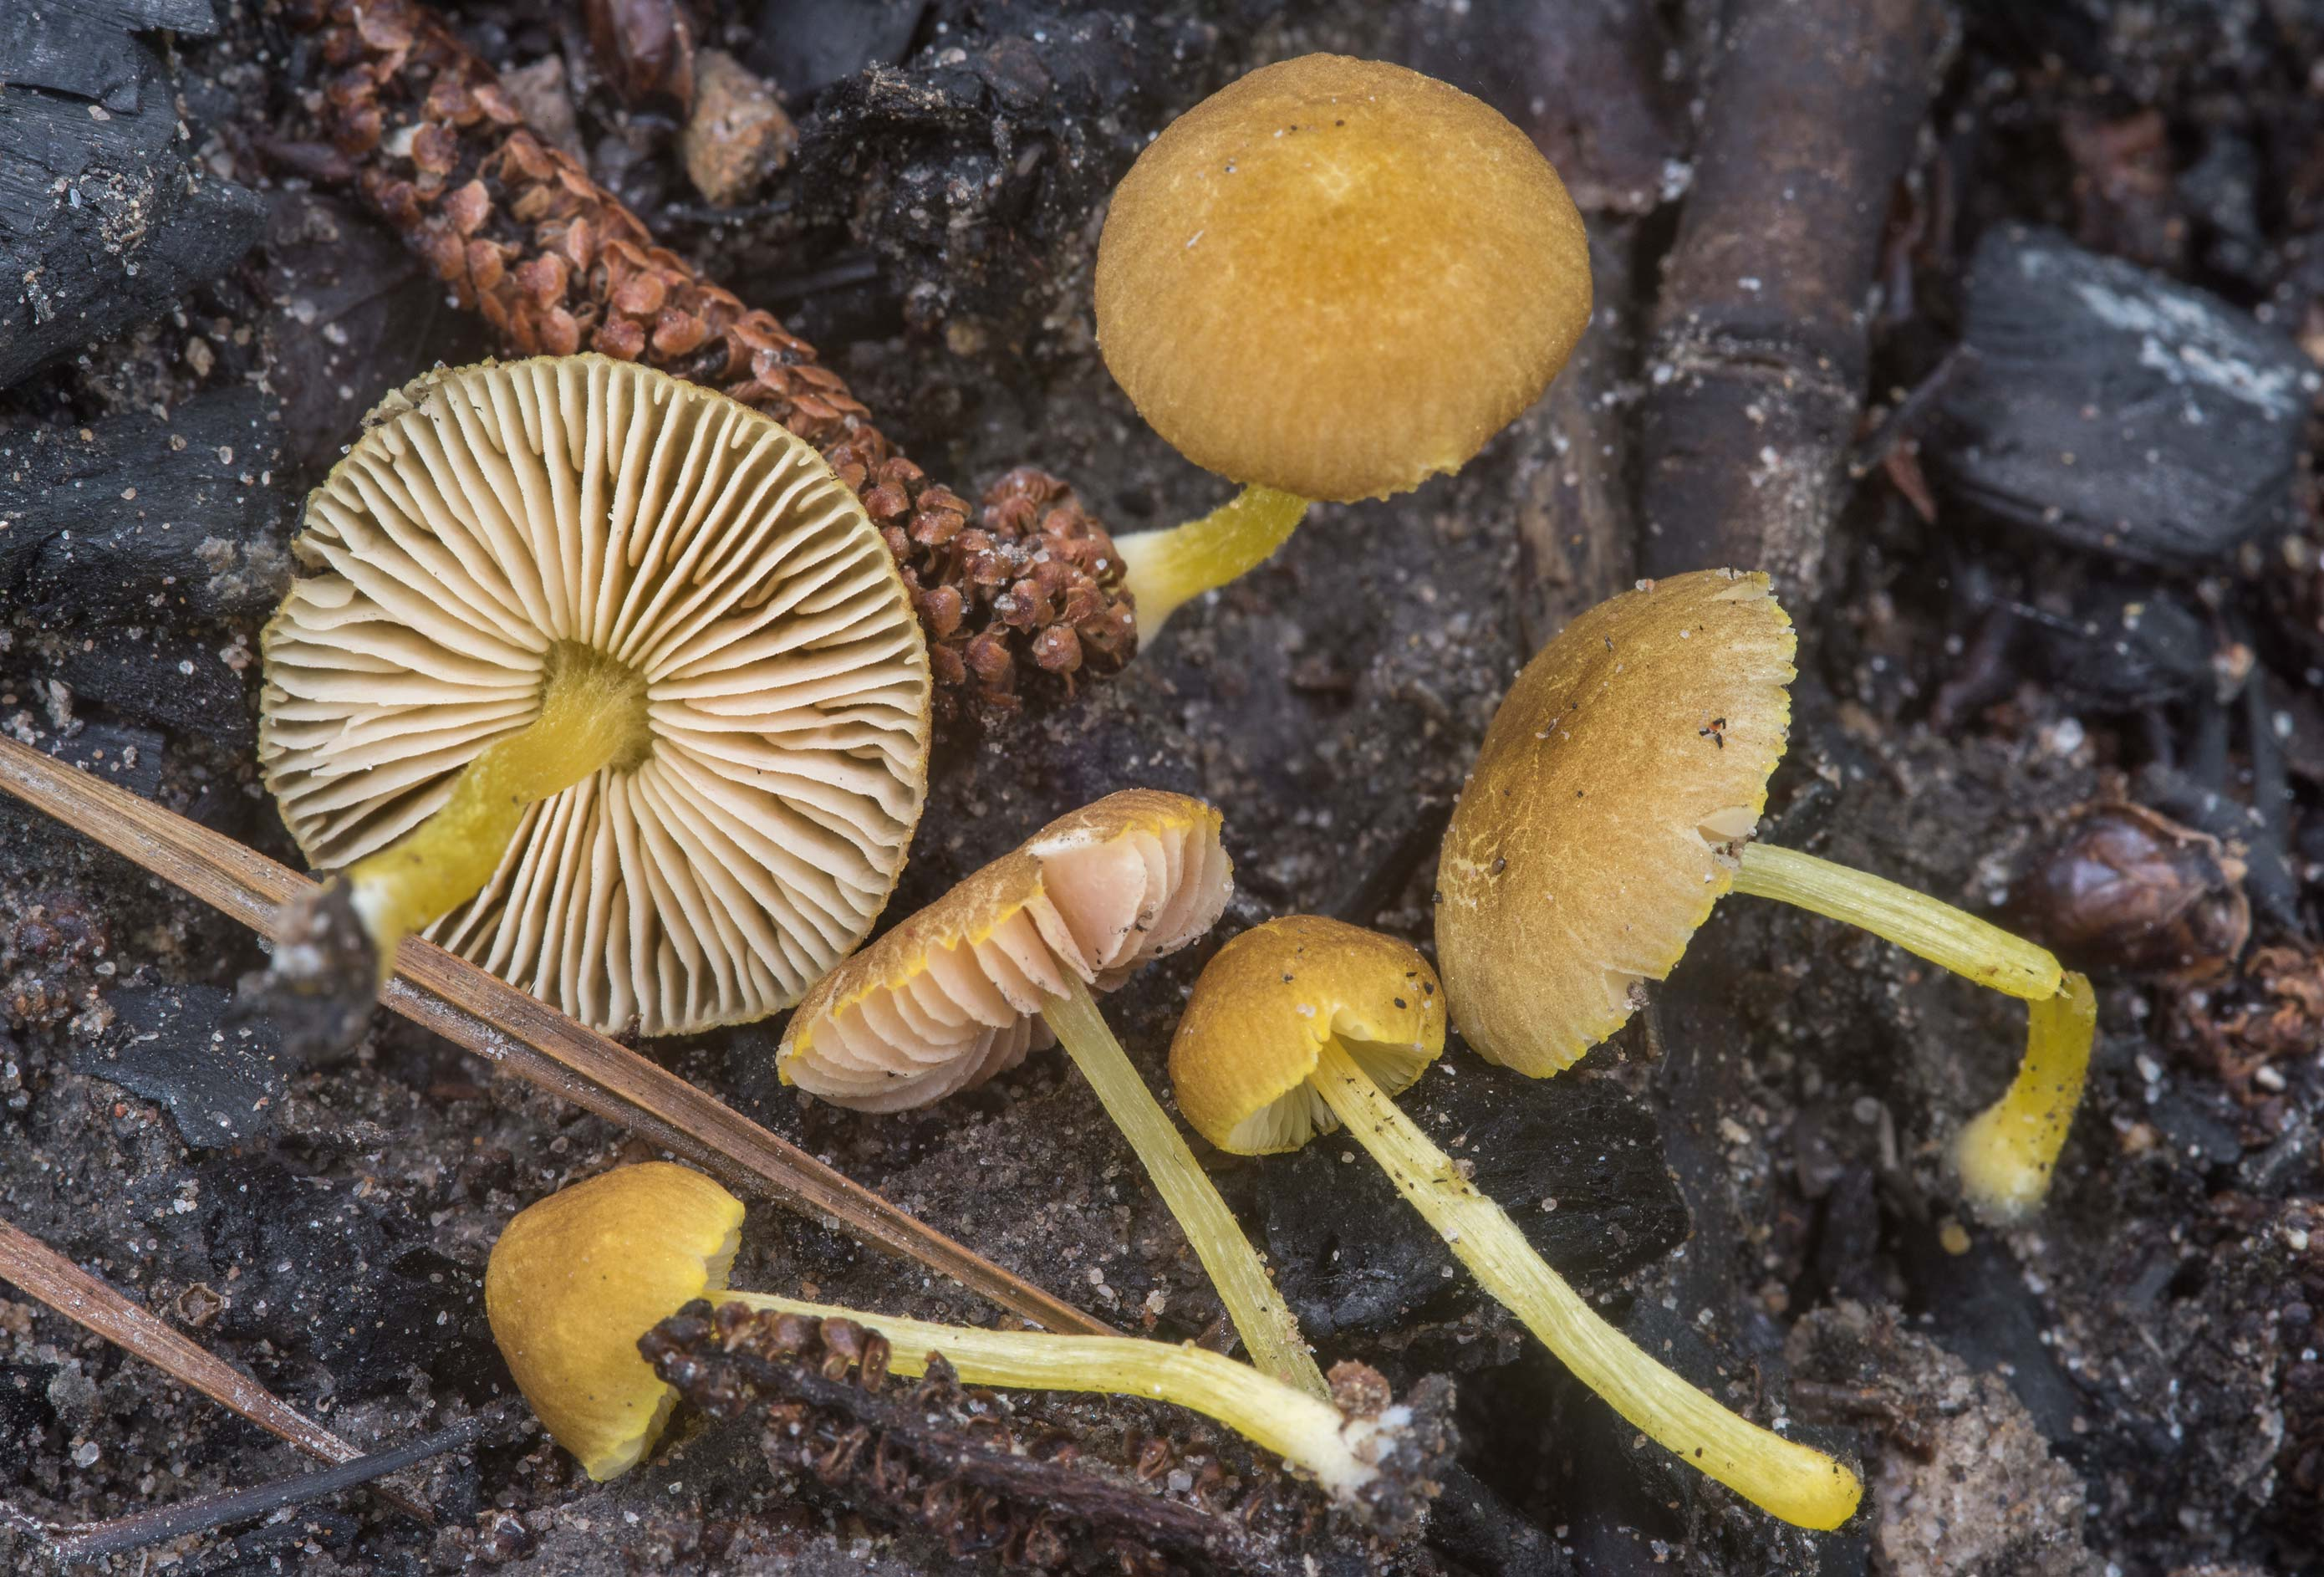 Pluteus chrysophlebius mushrooms on a site of a...Forest, near Huntsville. Texas